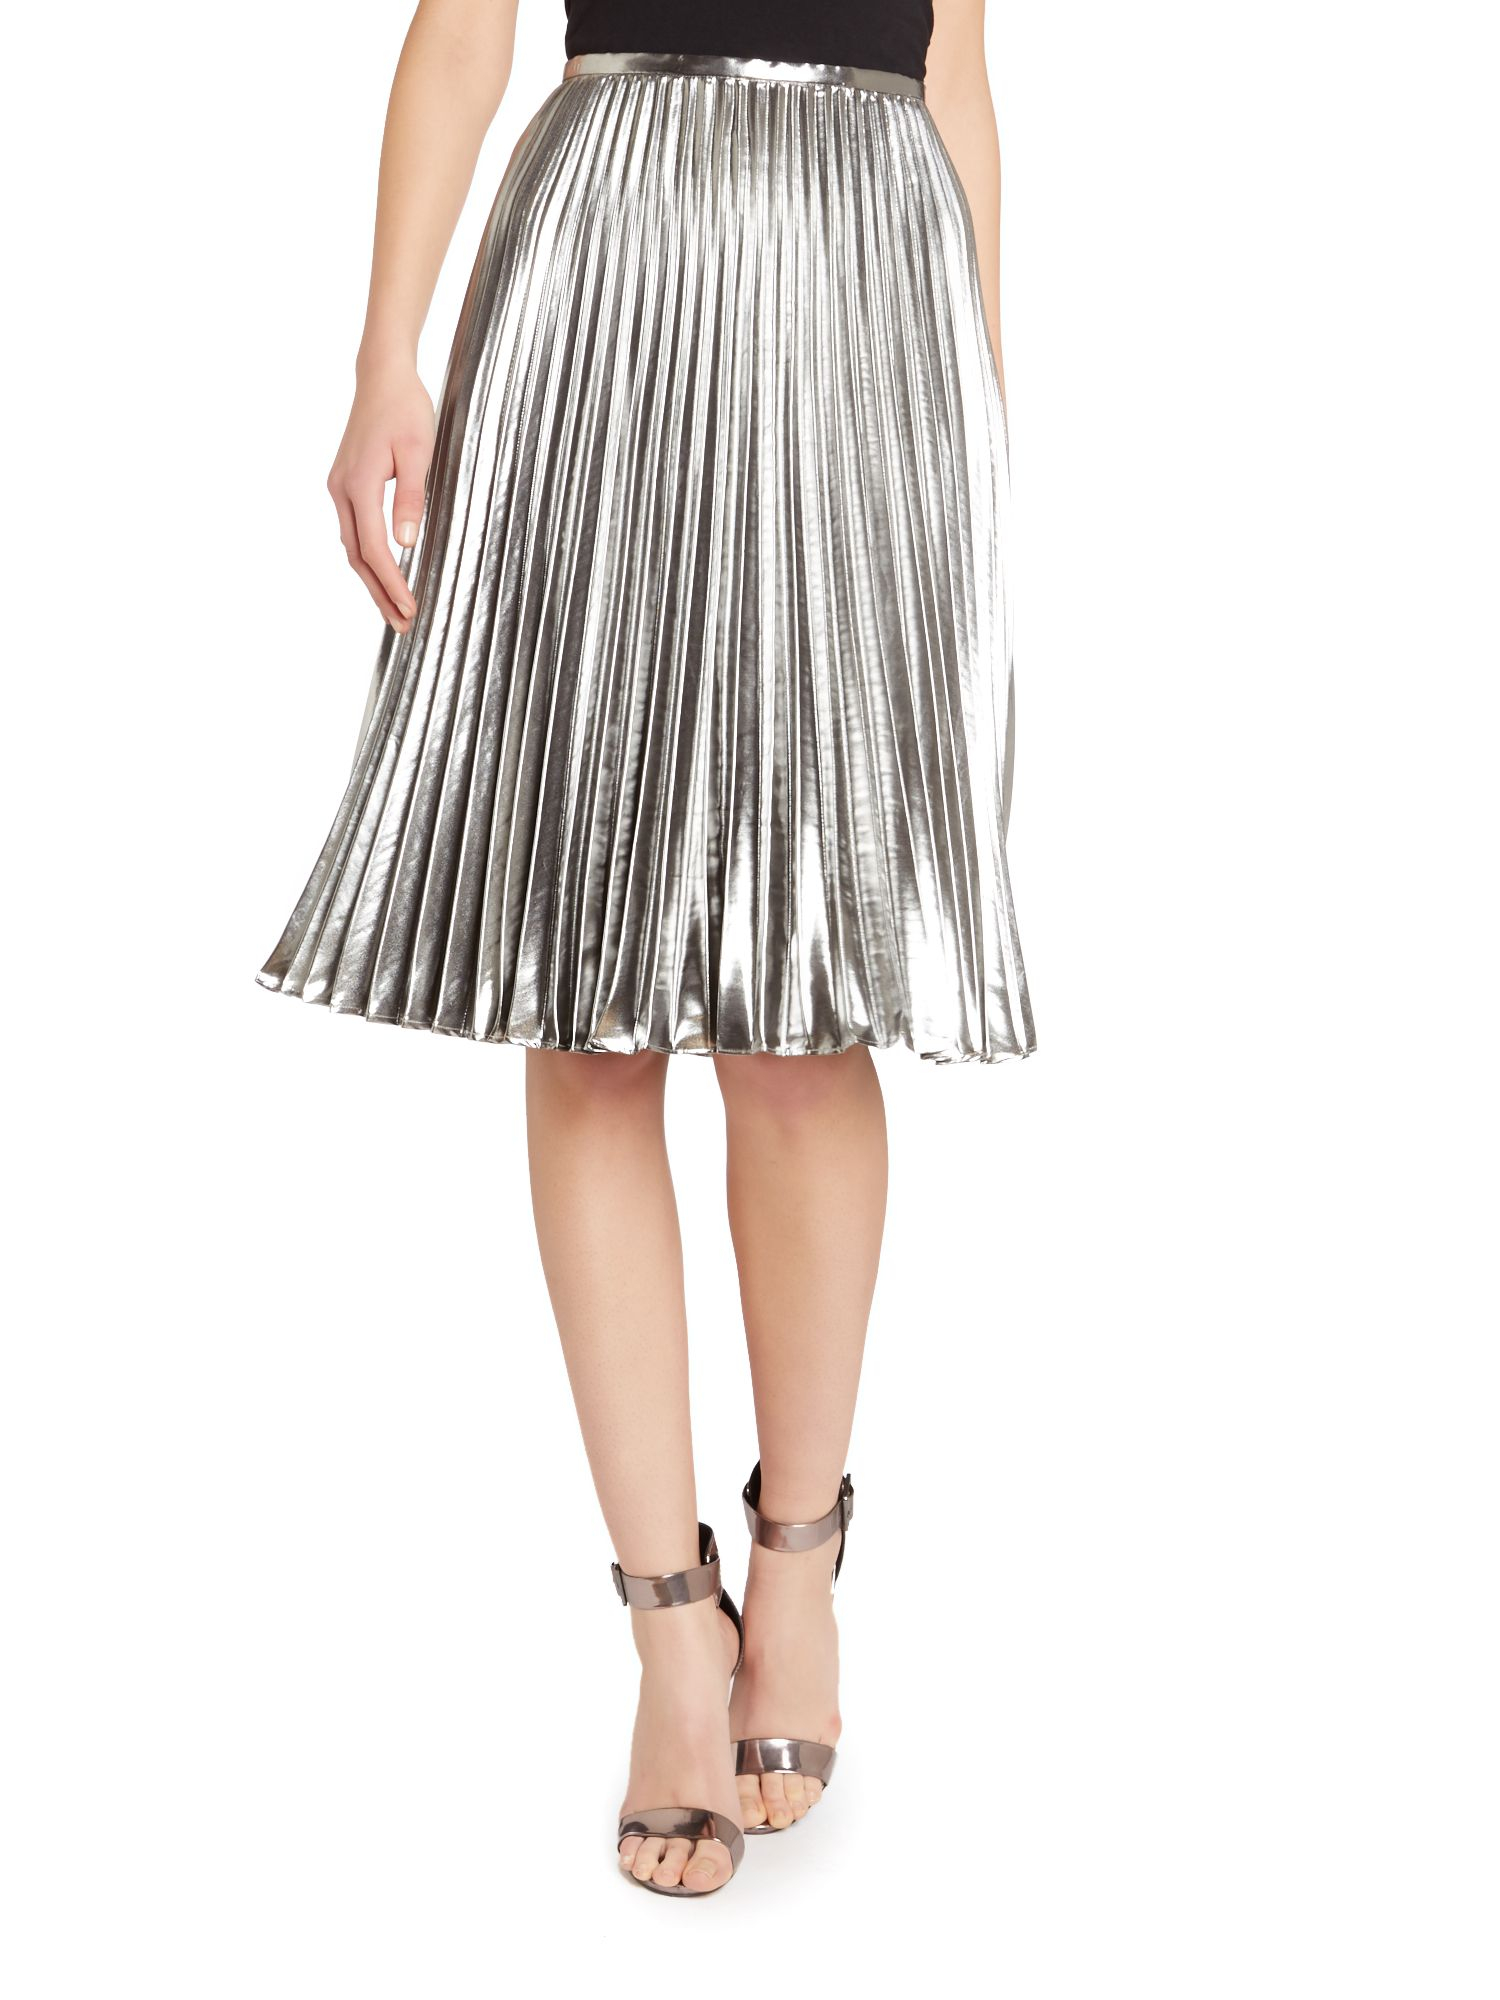 Silver Pleated Skirt - Skirts